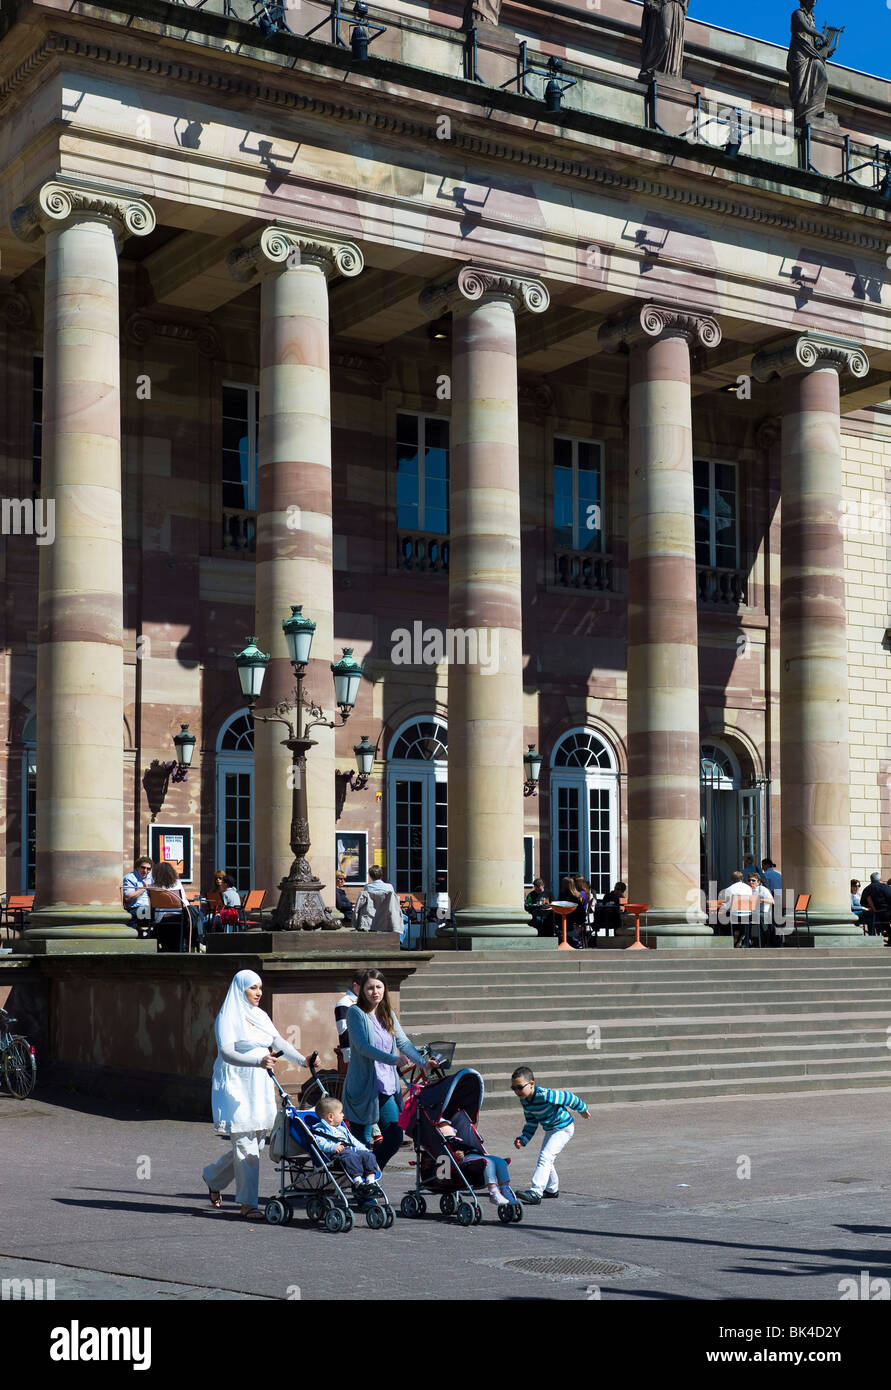 MUSLIM WOMEN WITH BABY PRAMS IN FRONT OF OPERA HOUSE STRASBOURG ALSACE FRANCE EUROPE - Stock Image